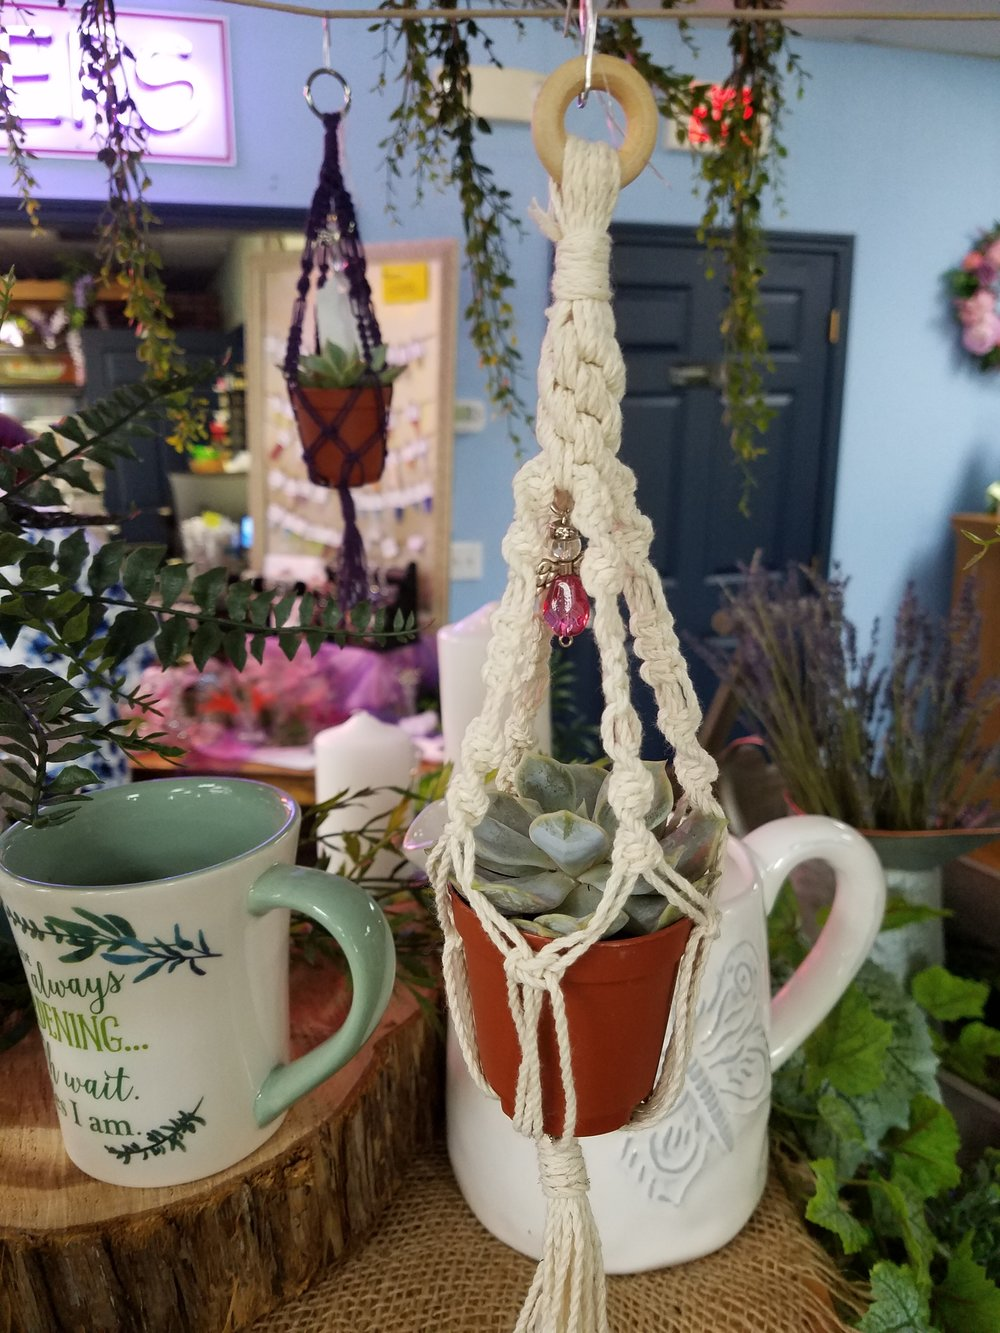 Mini Macrame Plant Hangers Orchard Hills Floral Gifts